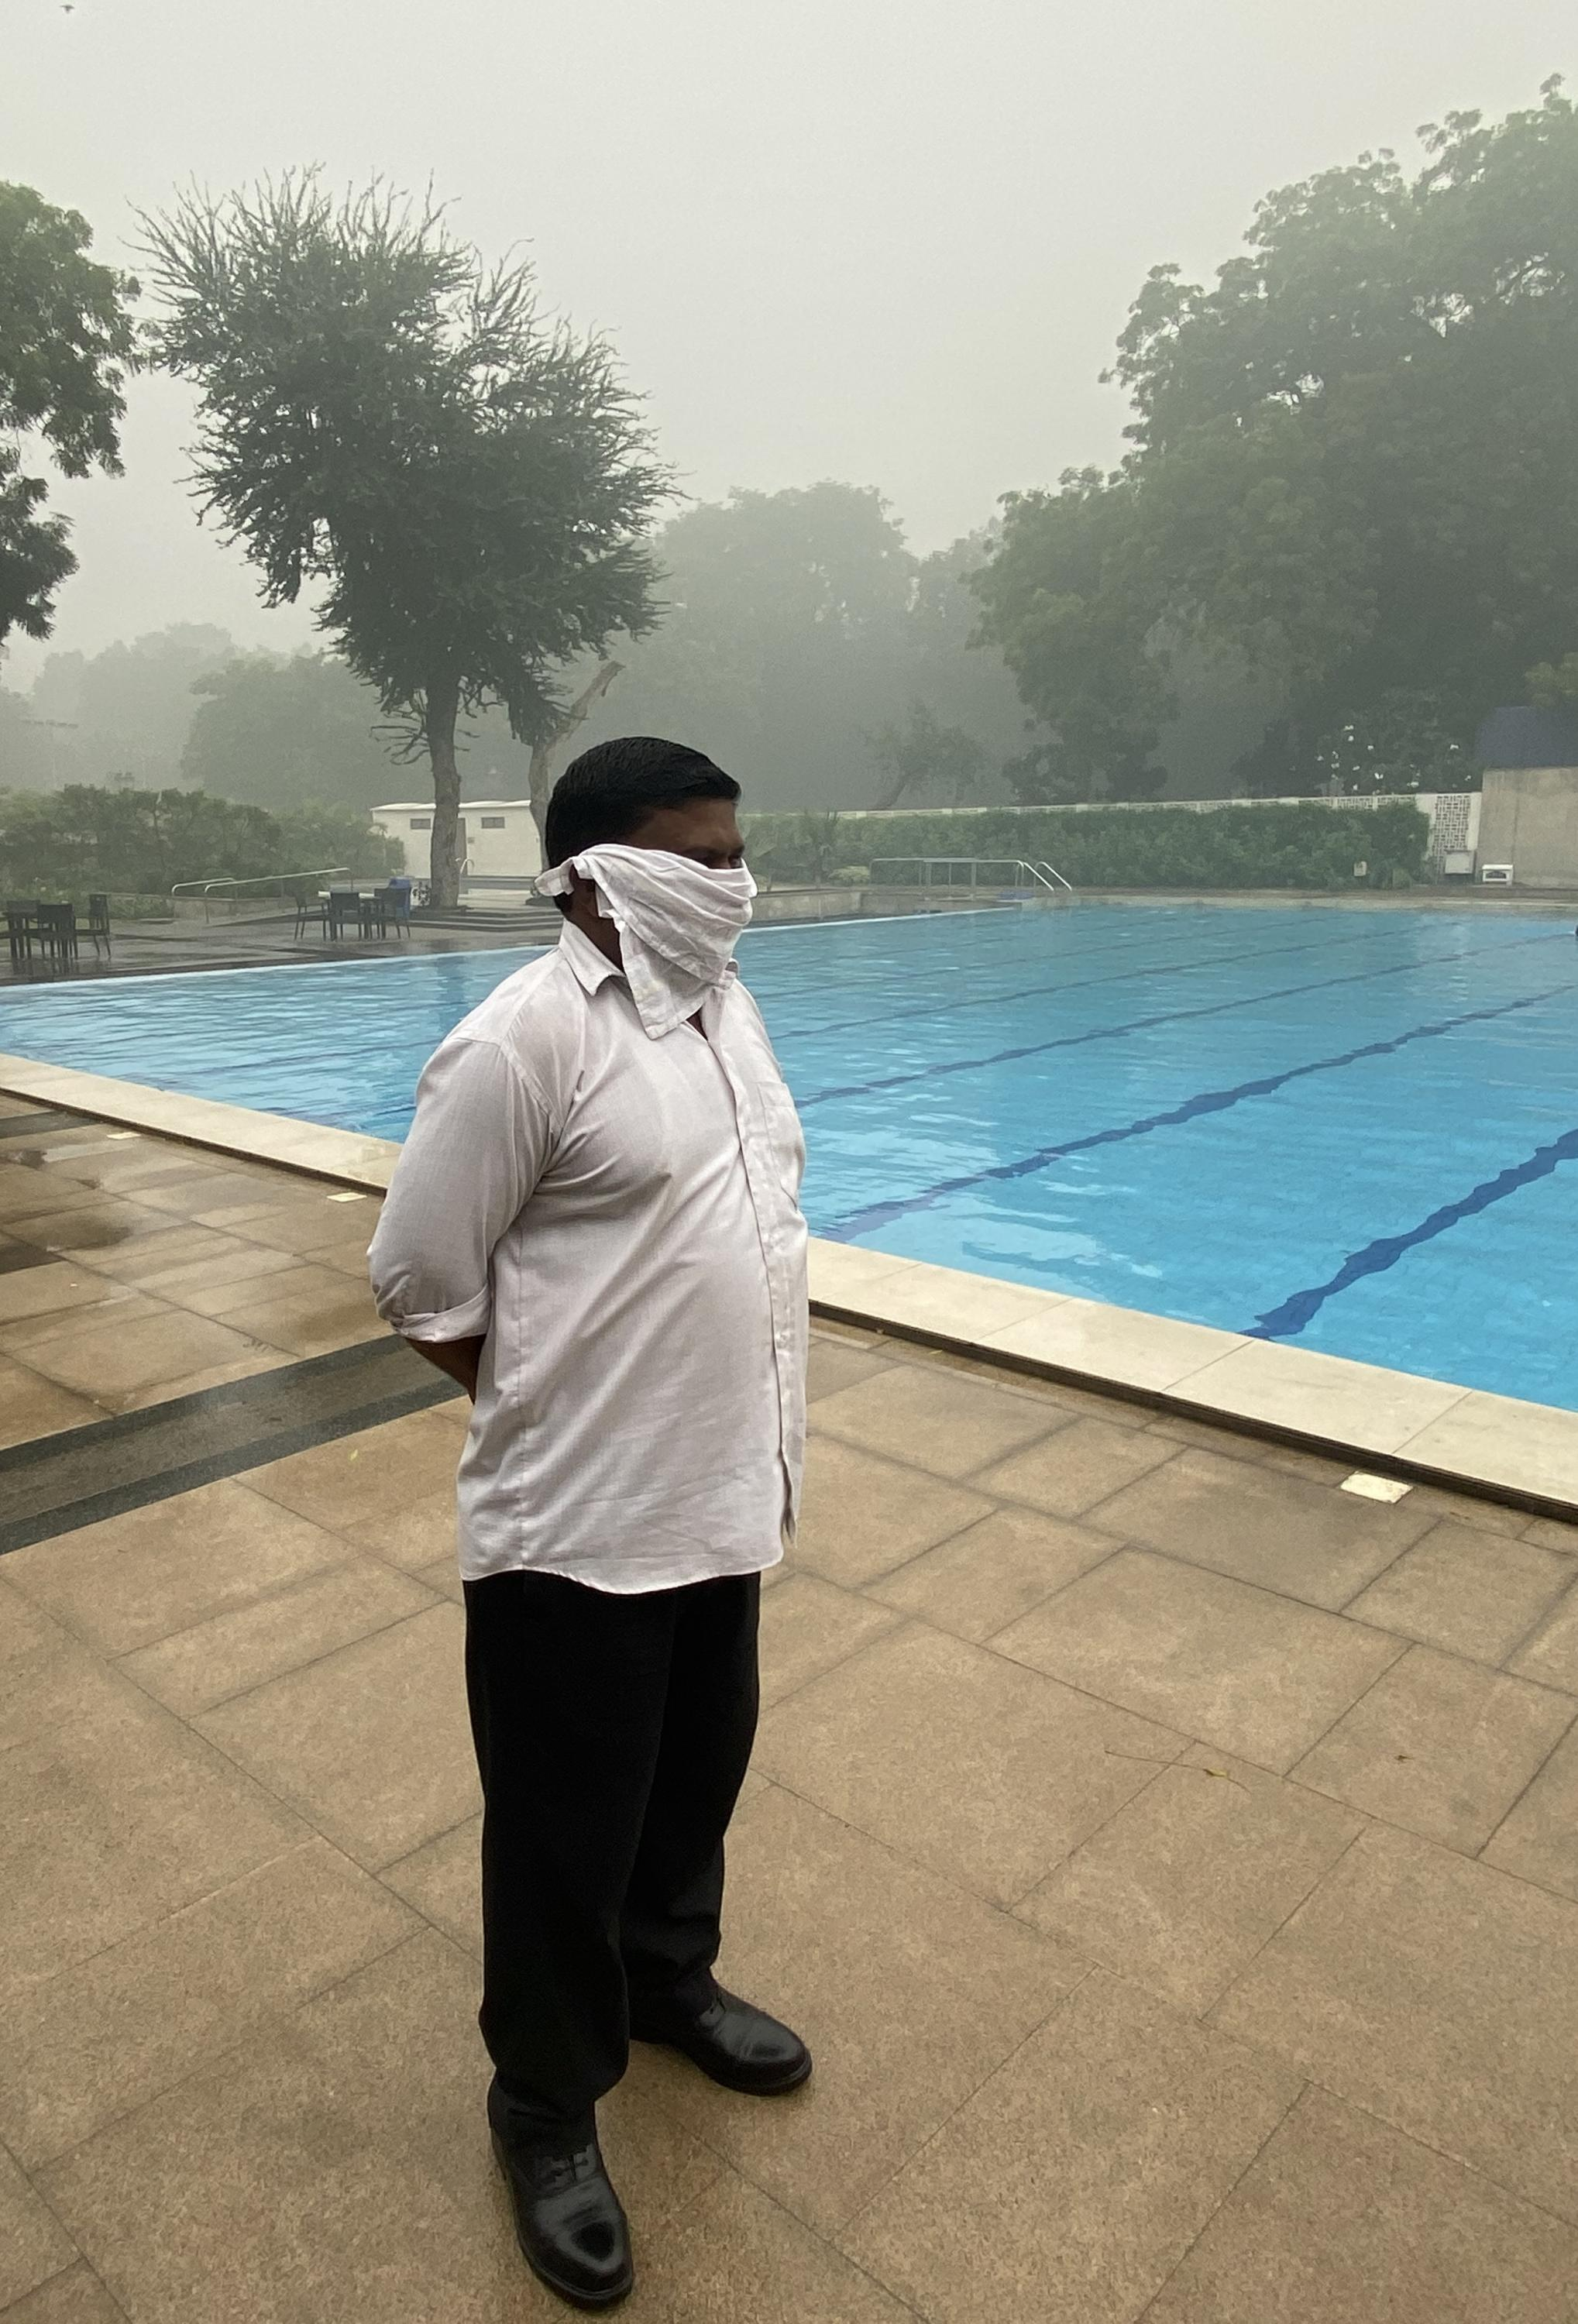 The pollution in Delhi has been so bad that swimming pools and other facilities have been unusually quiet.